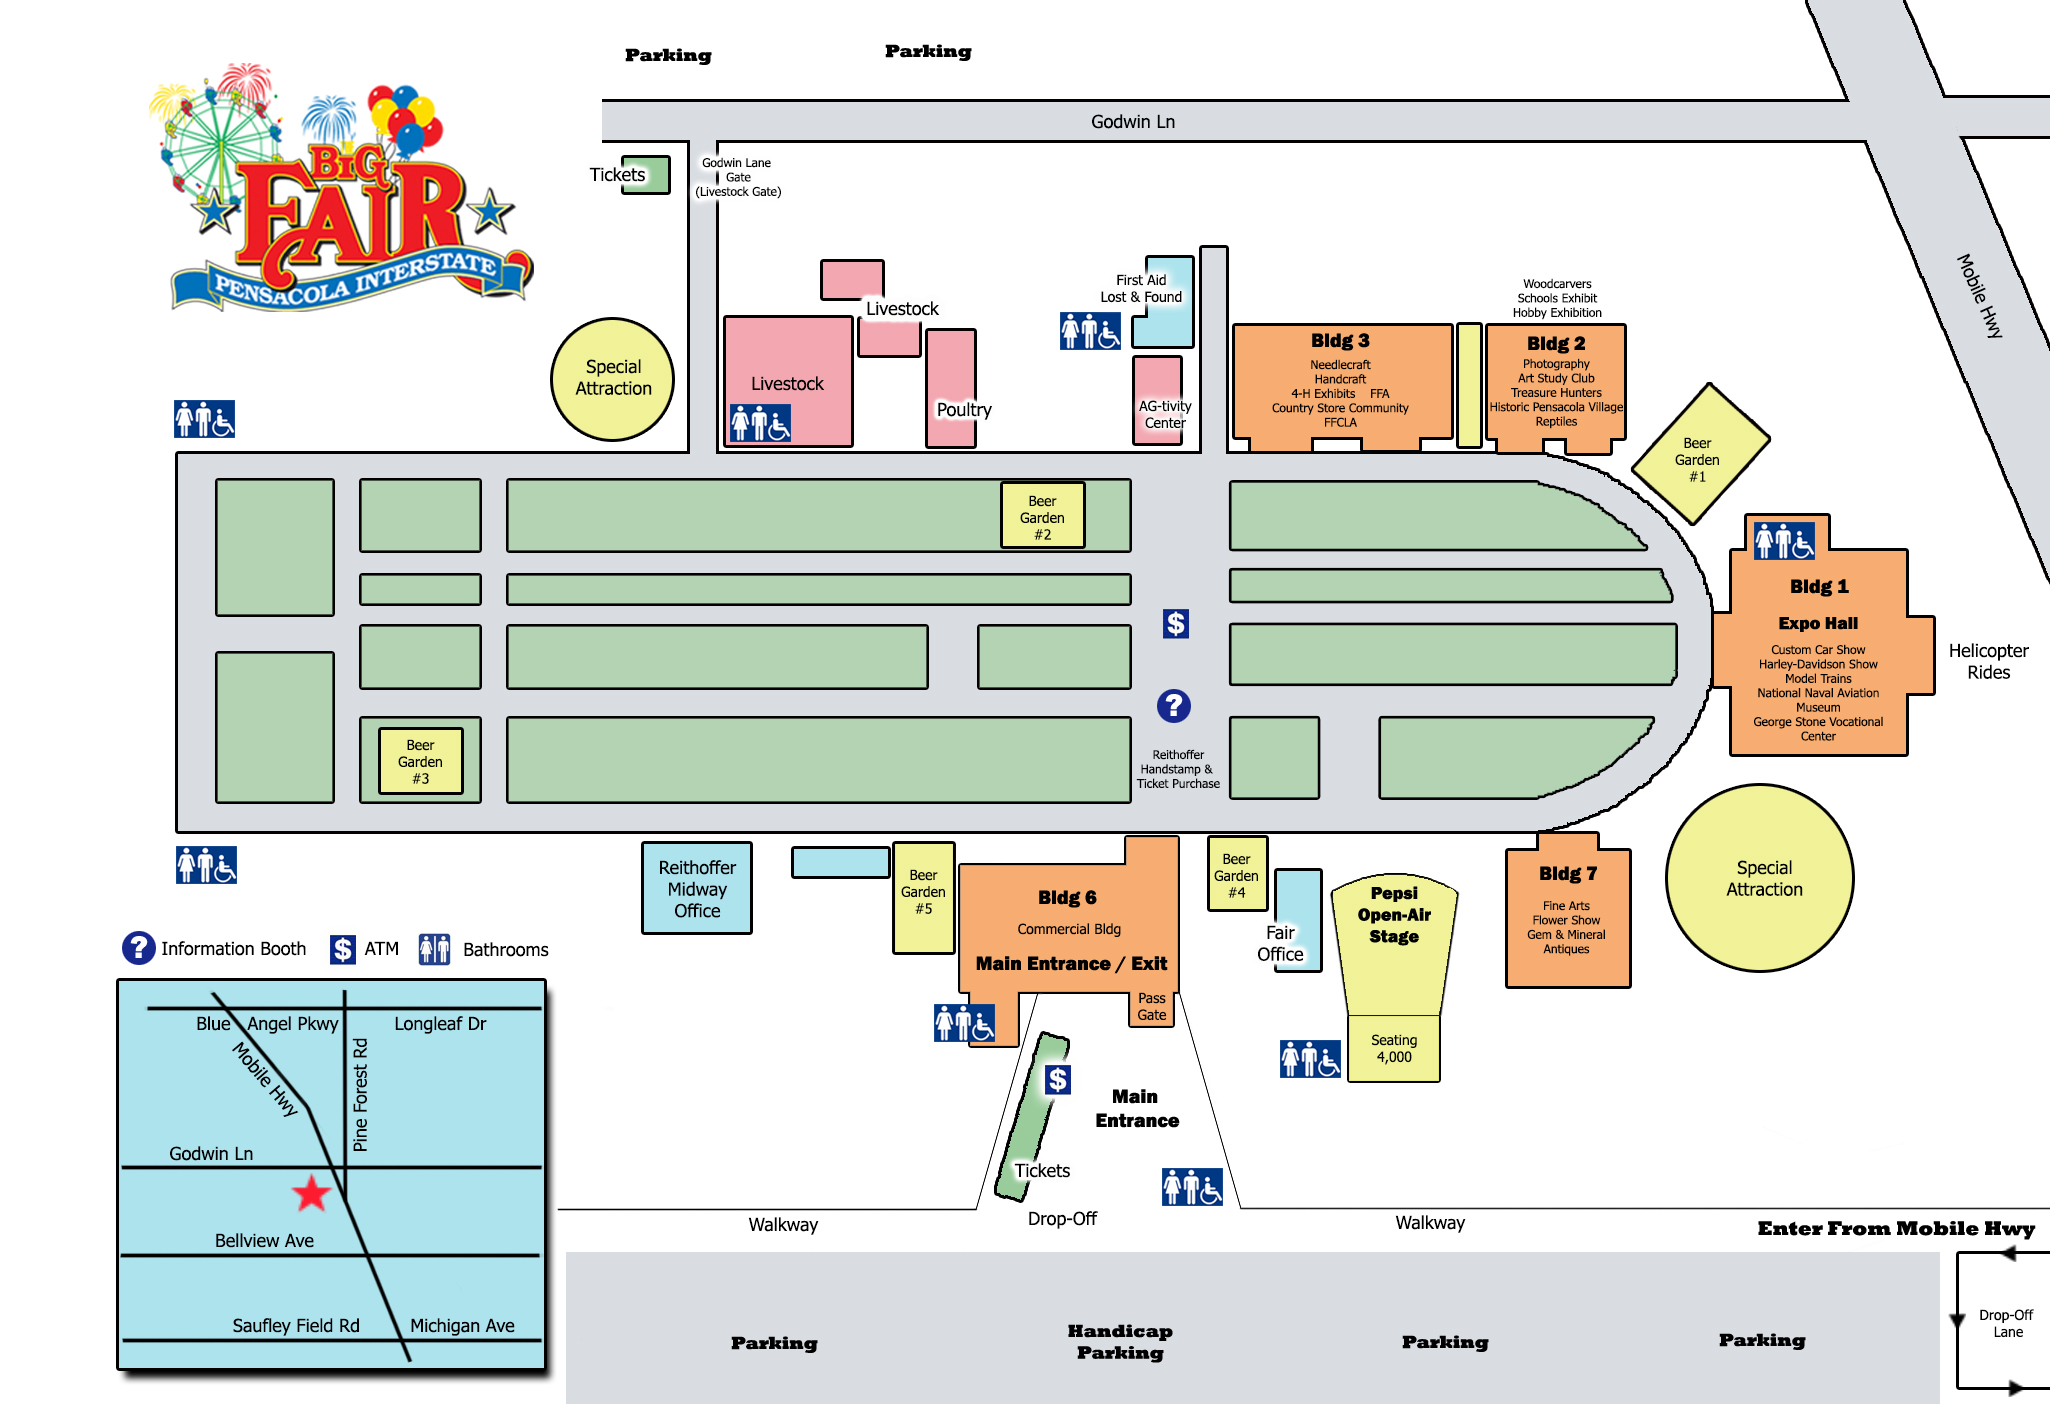 Fairgrounds Map : Pensacola Interstate Fair on map of banks in pensacola, map of hotels daytona beach, map of istanbul hotels, map of washington hotels, map of austin hotels, map of dubai hotels, map of golf courses in pensacola, home in pensacola, map of santa fe hotels, map of marinas in pensacola,